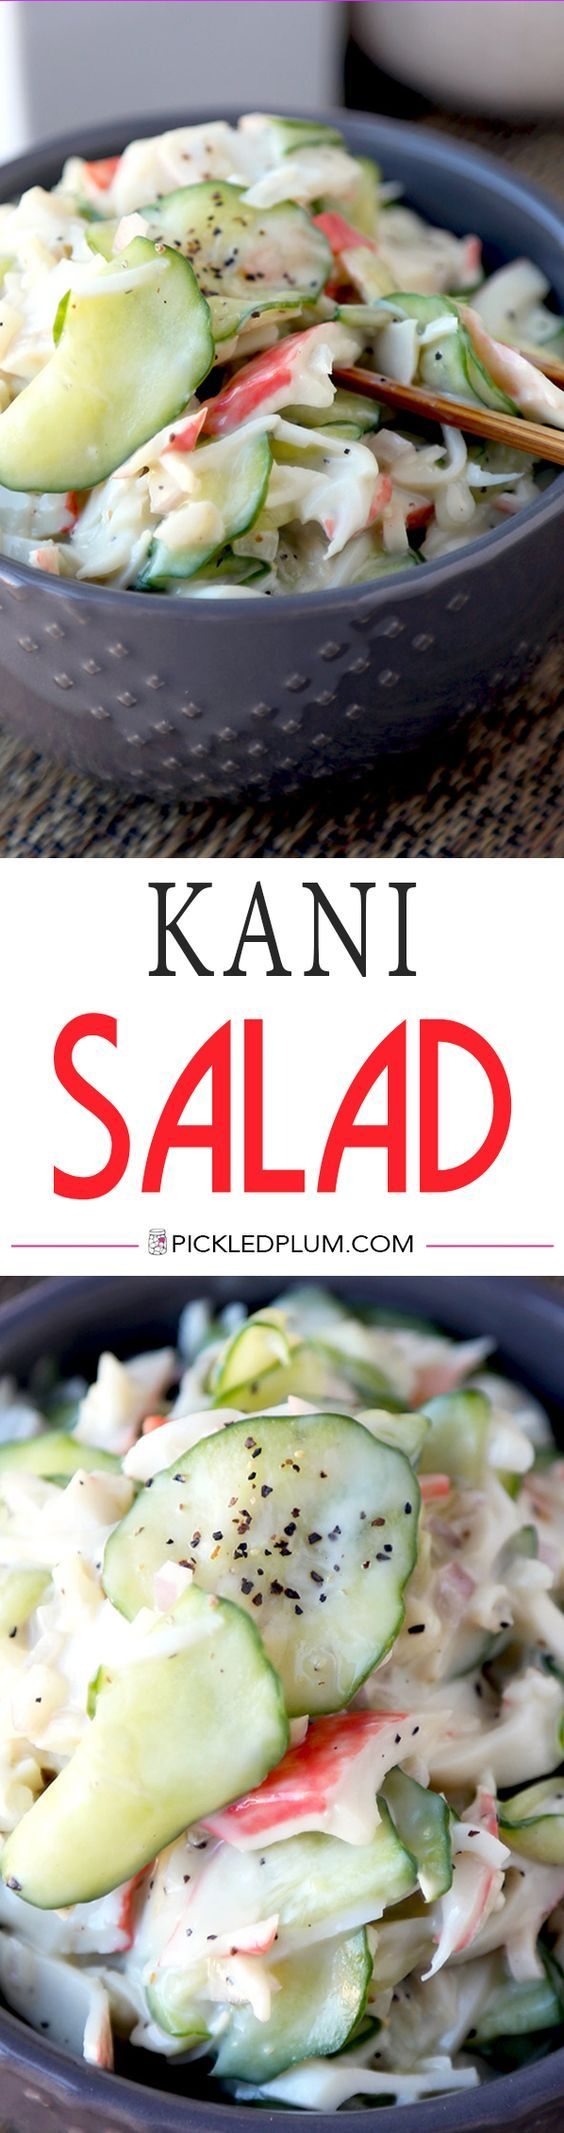 Kani Salad - This is a light and creamy kani (crab) salad with sweet and salty…